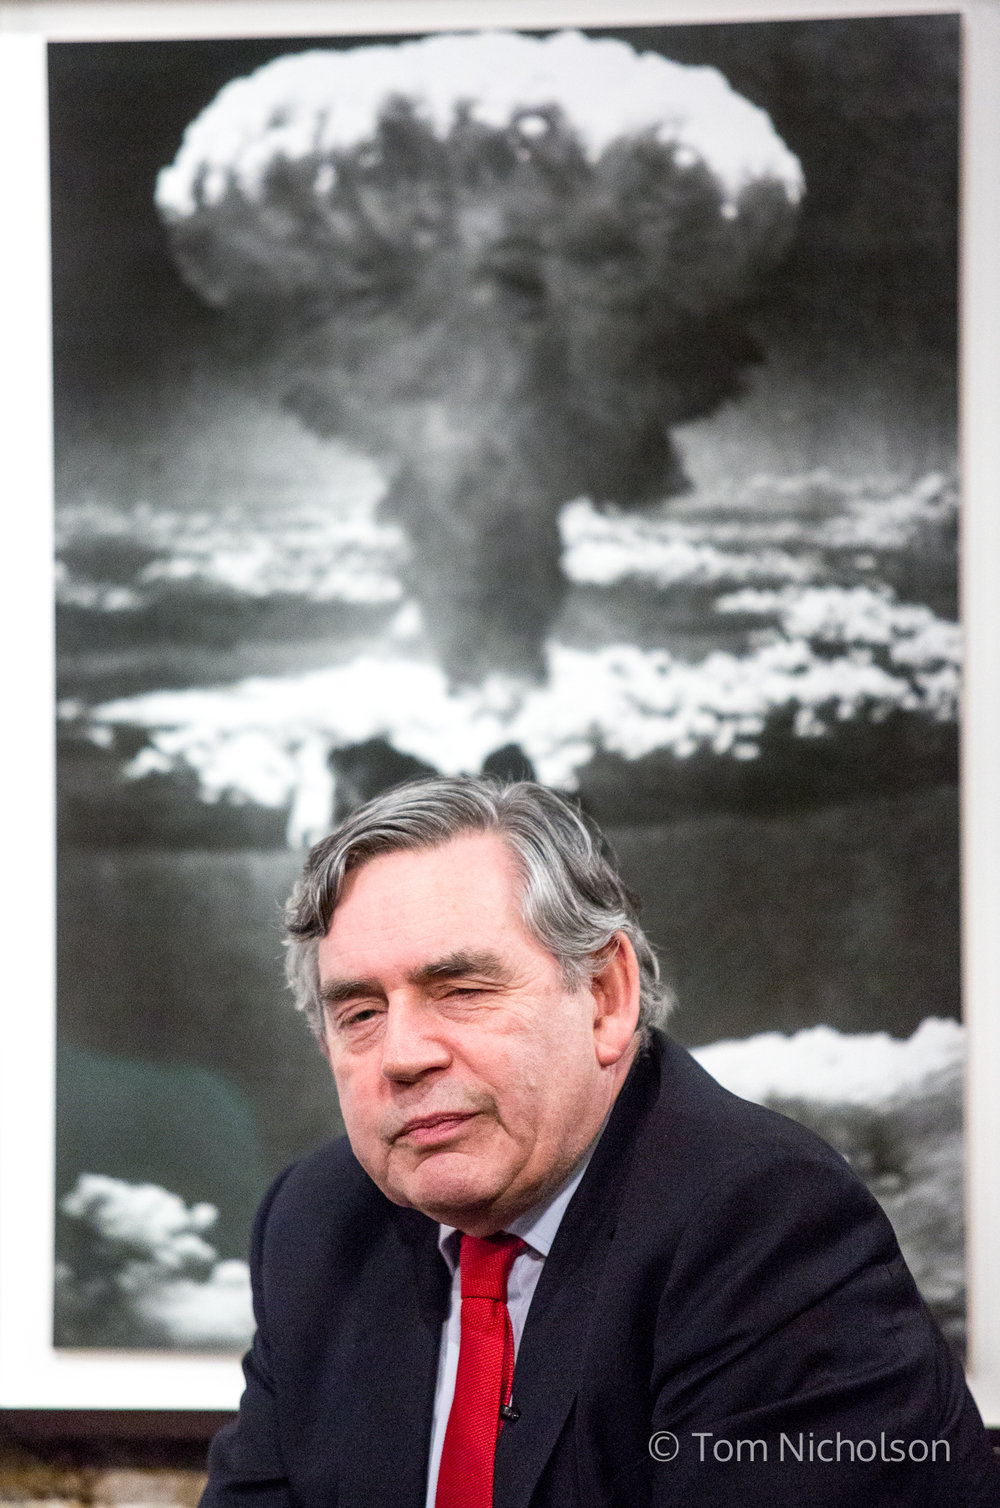 25/01/2016. London, UK. Former British Prime Minister and ex-leader of the Labour Party Gordon Brown speaks at the 'Funding Education for Syrian Child Refugees' discussion at The Frontline Club, London.